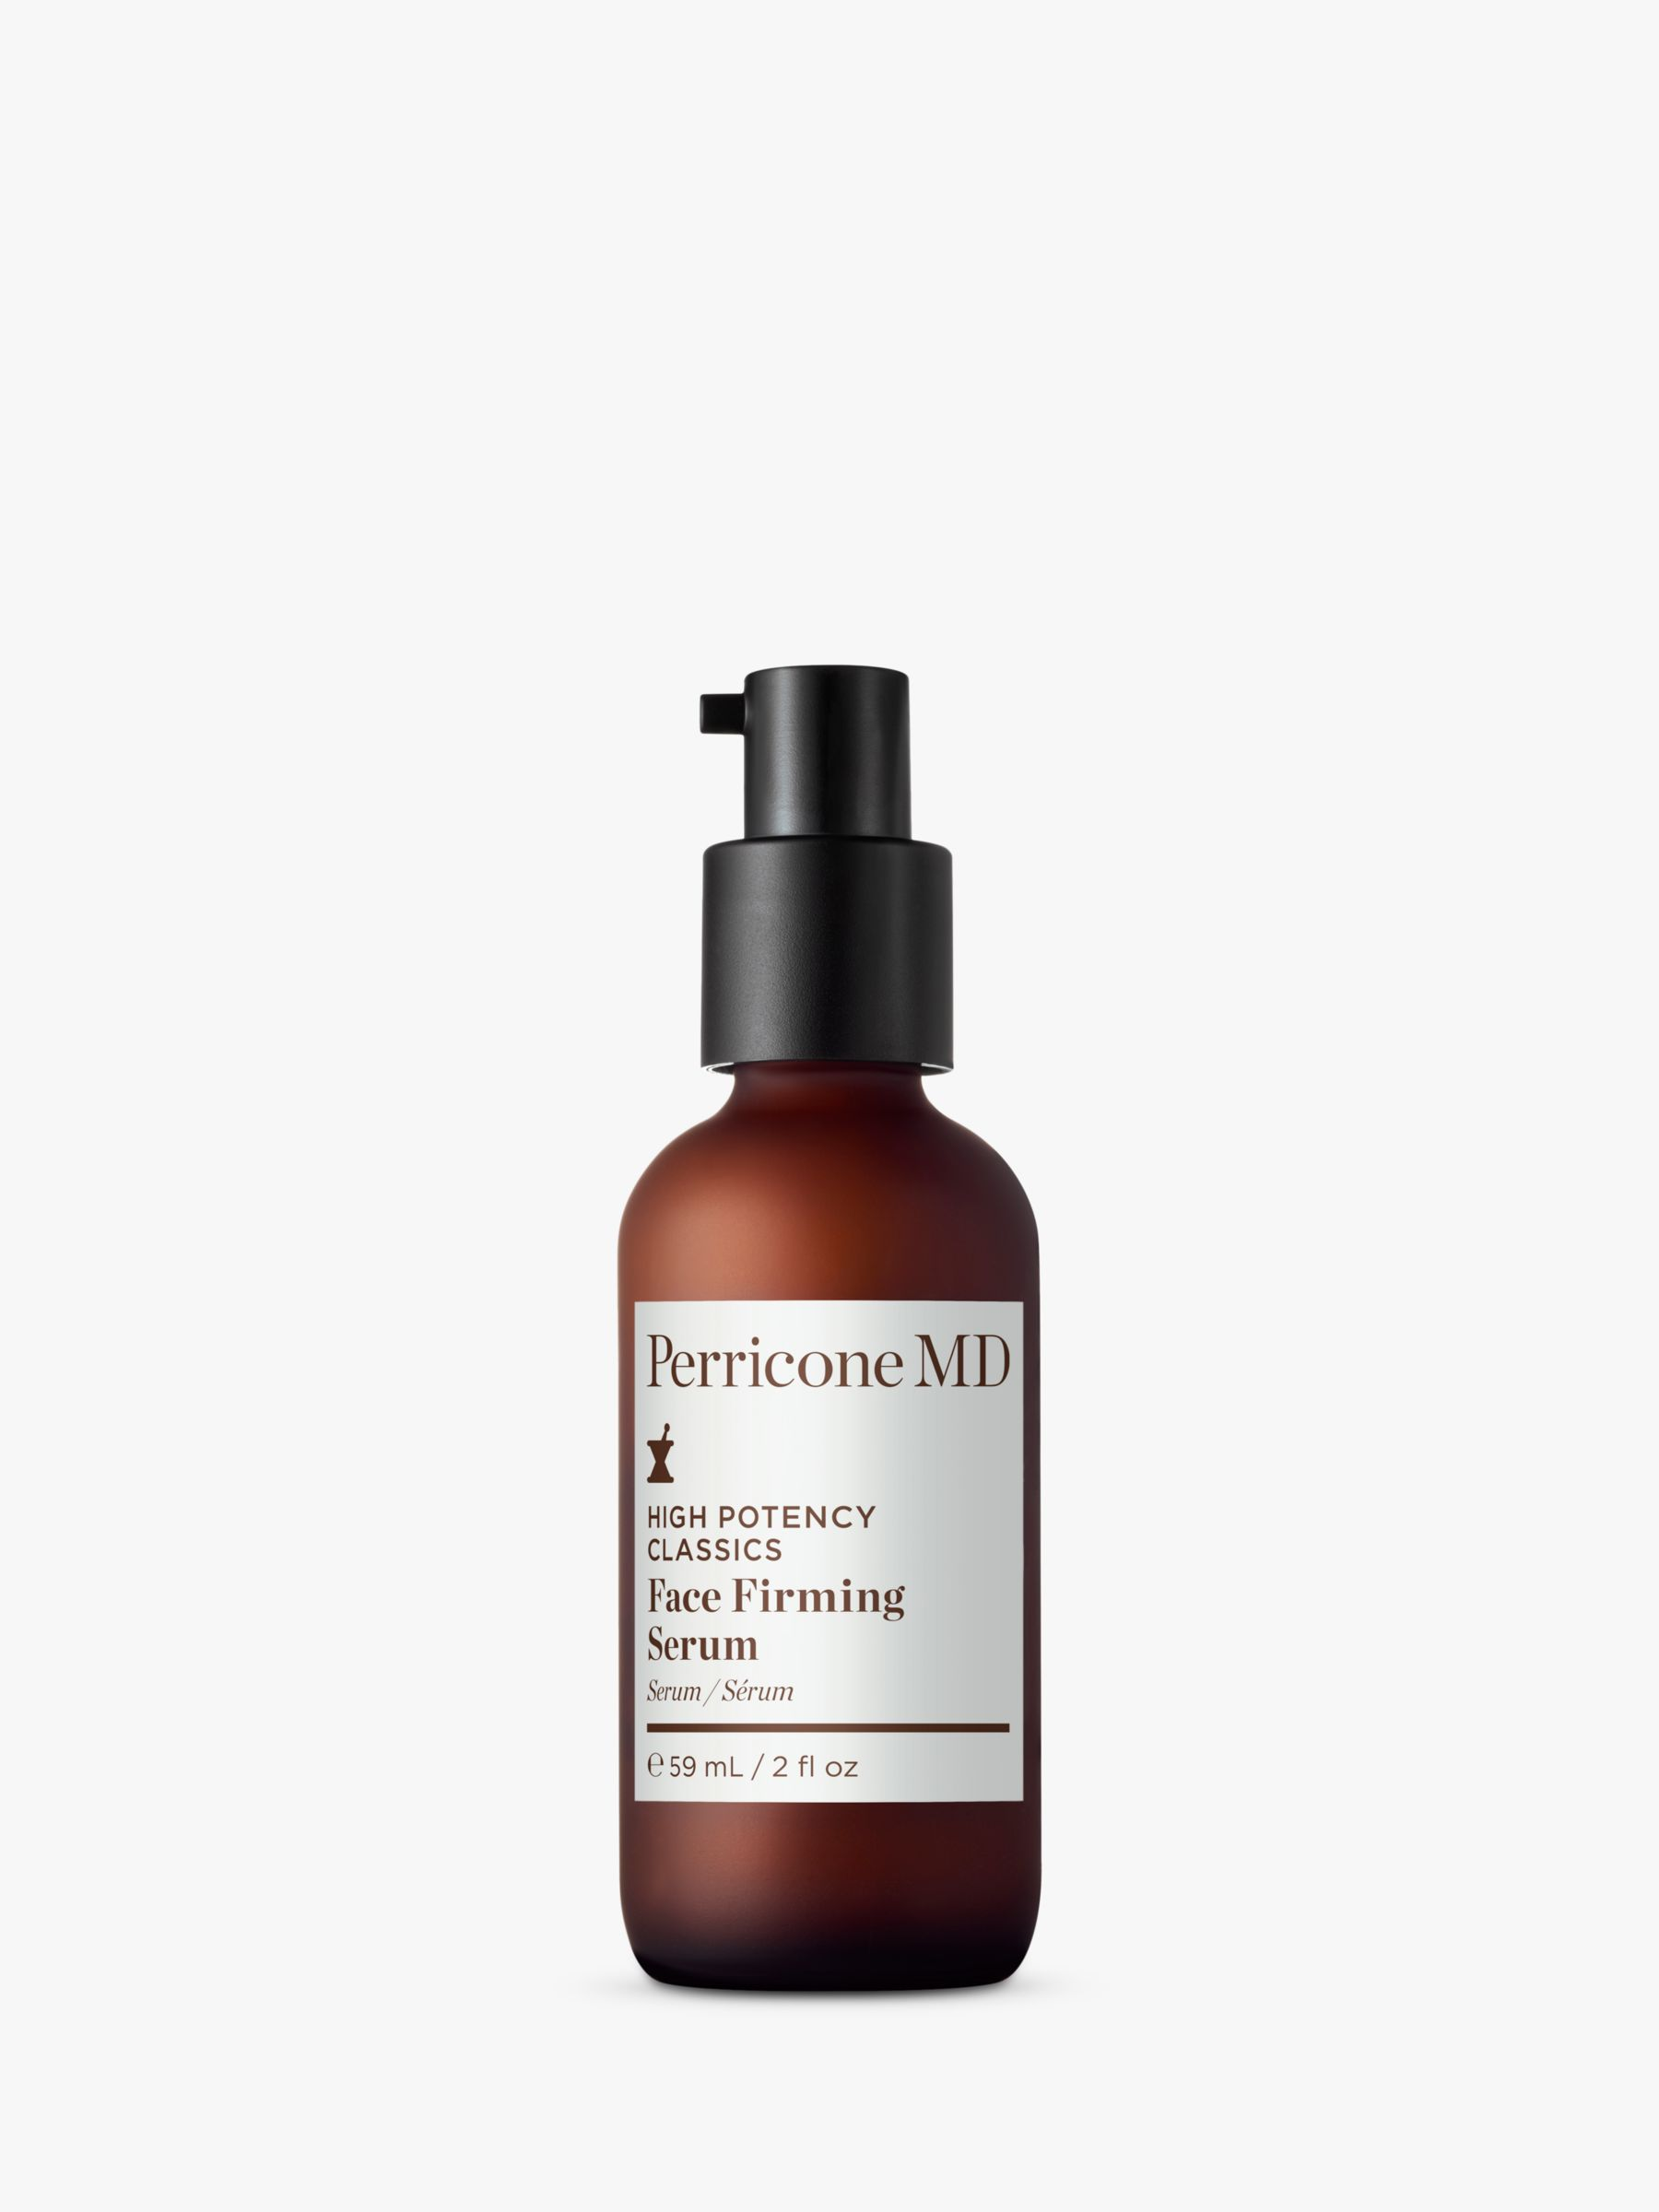 Perricone MD Perricone MD High Potency Classics Face Firming Serum, 59ml